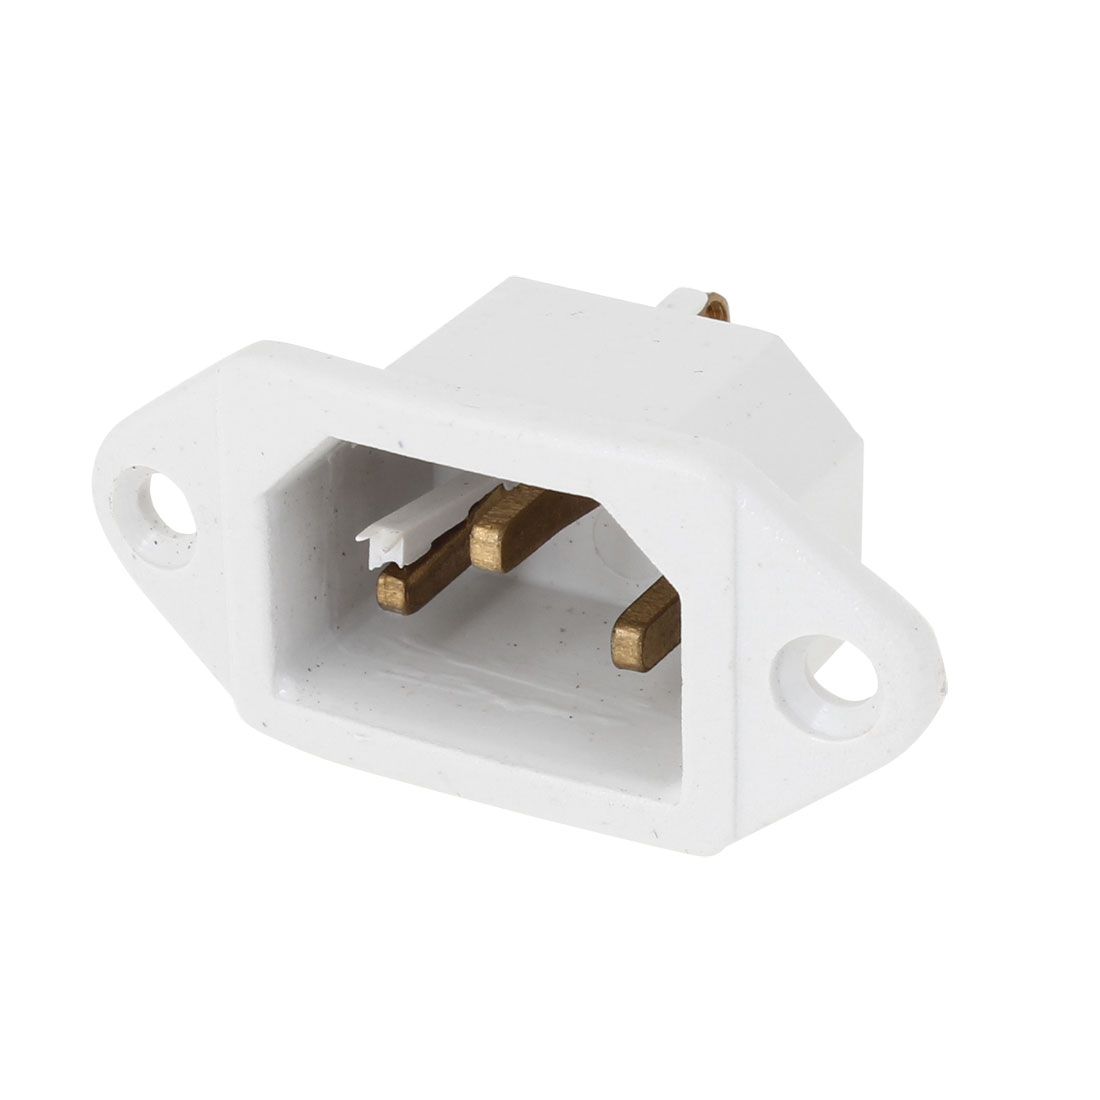 White Plastic Housing Supply Power Adapter for Electric Cooker